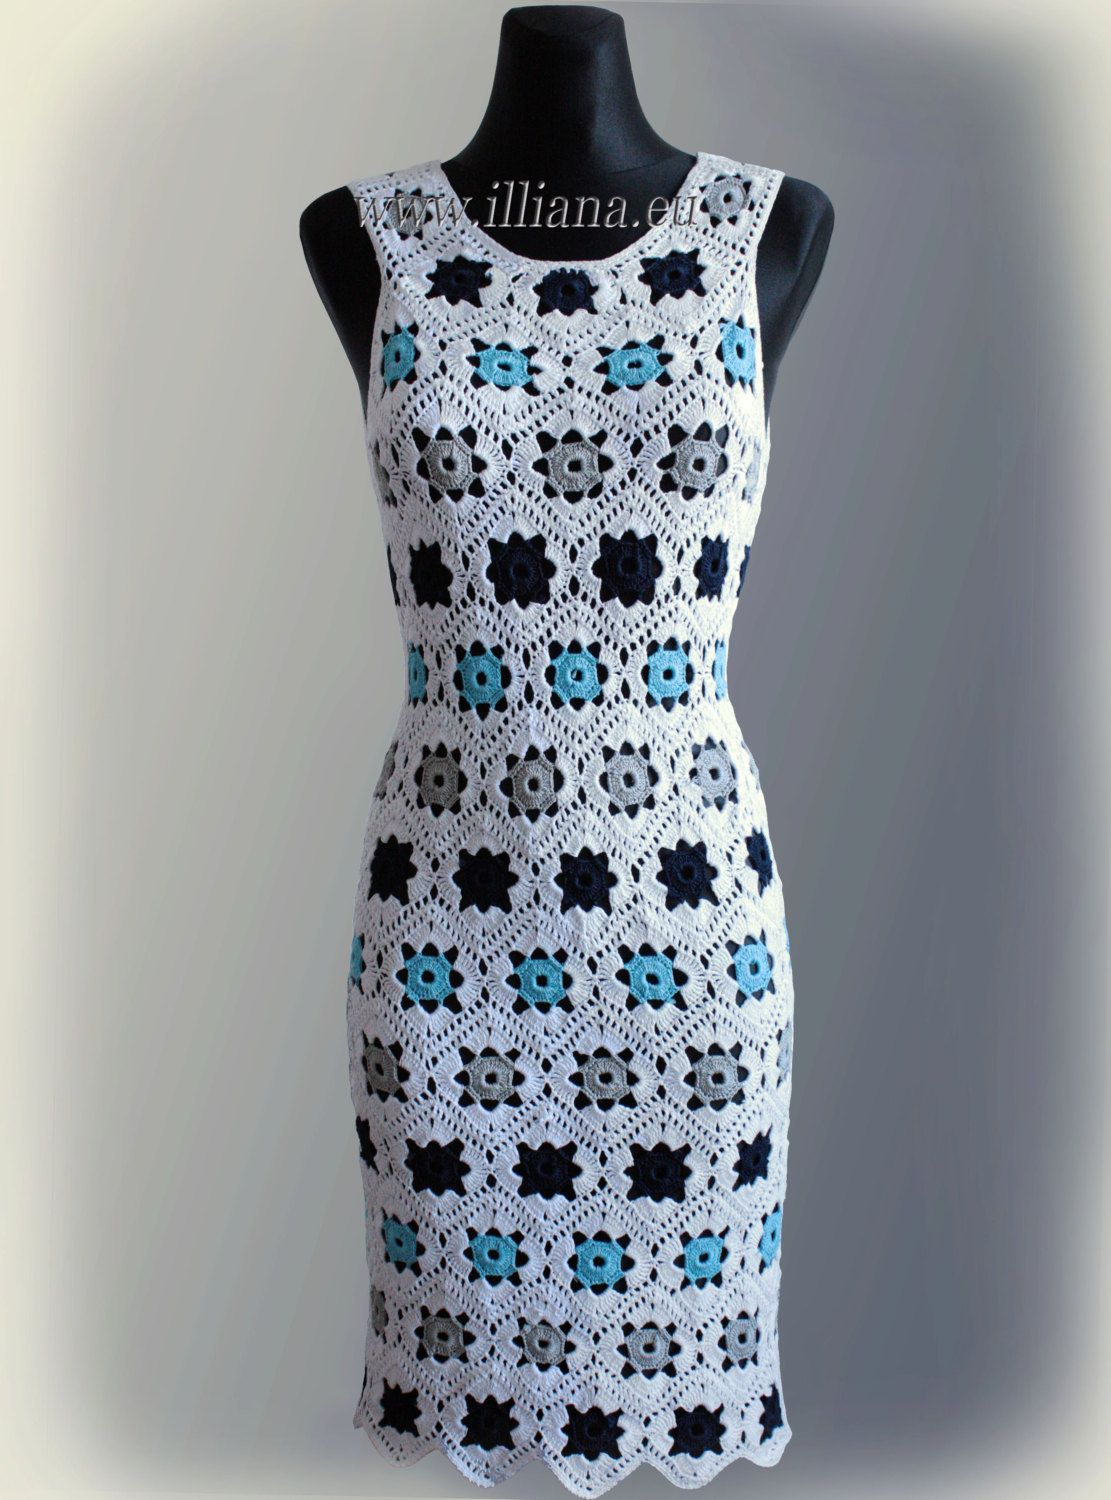 Dress. Crochet Pattern No 229.